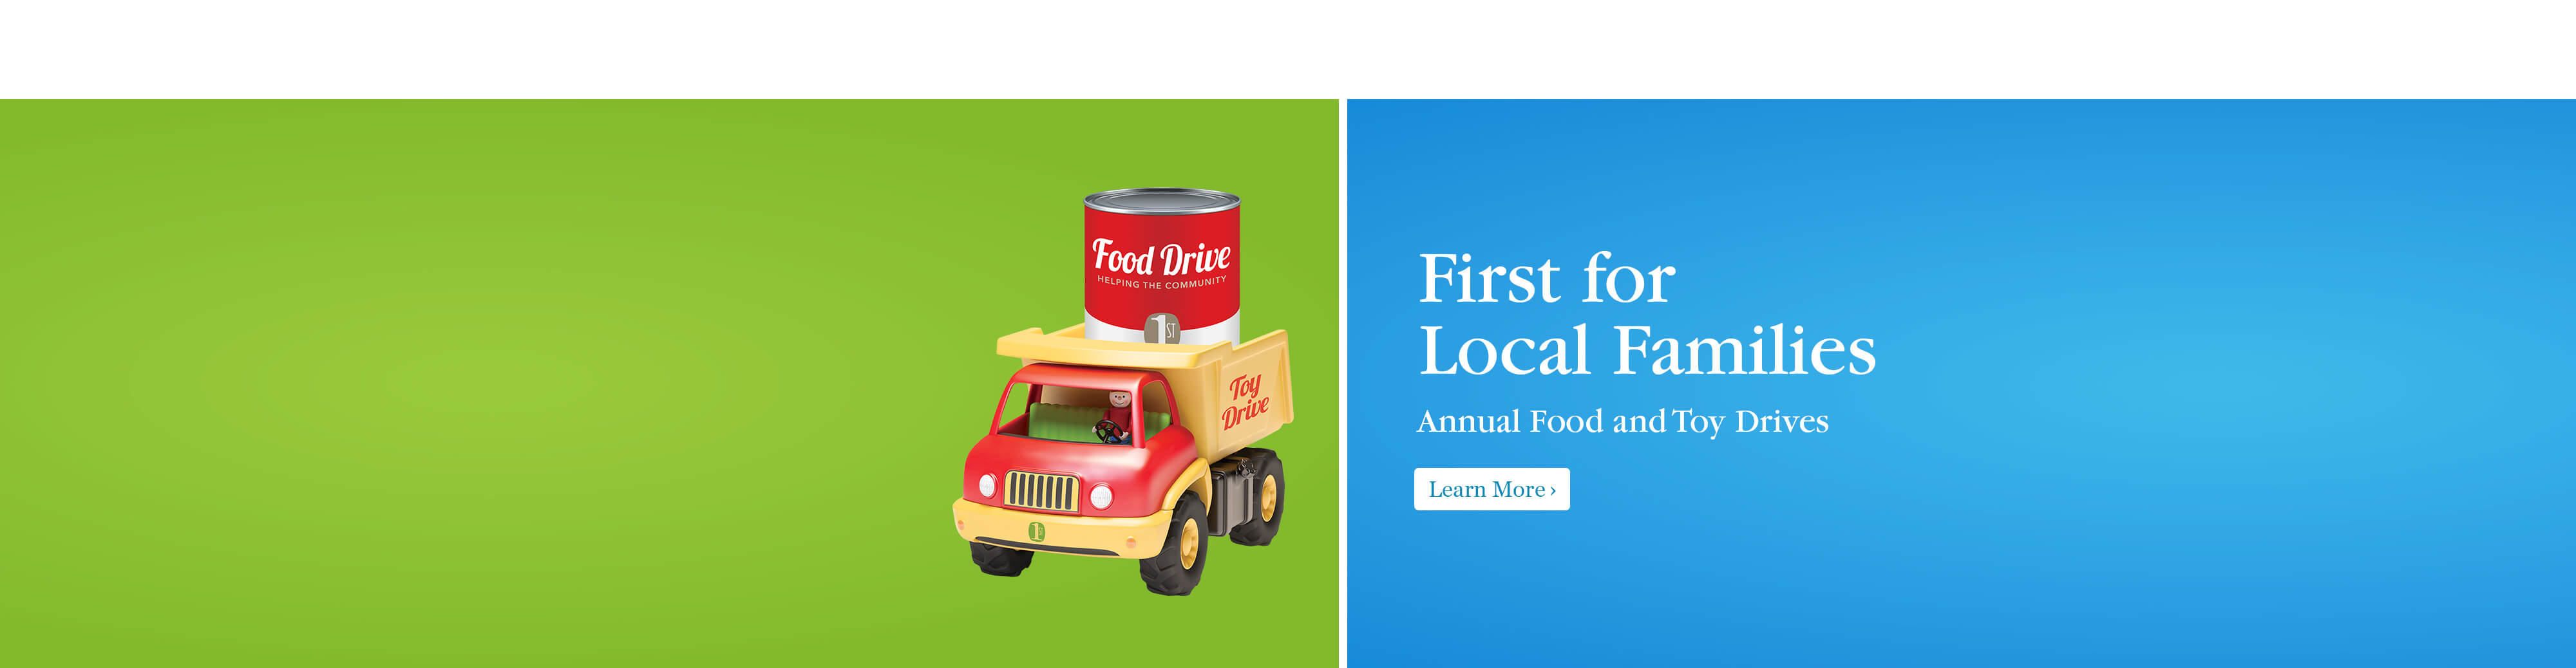 First for Local Families Food November 1 to November 30